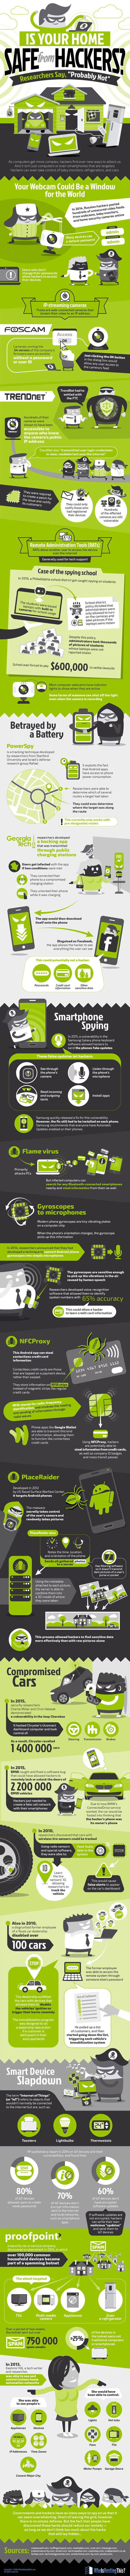 Best Way to Secure Home Network from Hackers Infographic.Topic: hack, hacking, internet of things, iot, smartphone, gadgets, appliances, computer technology.